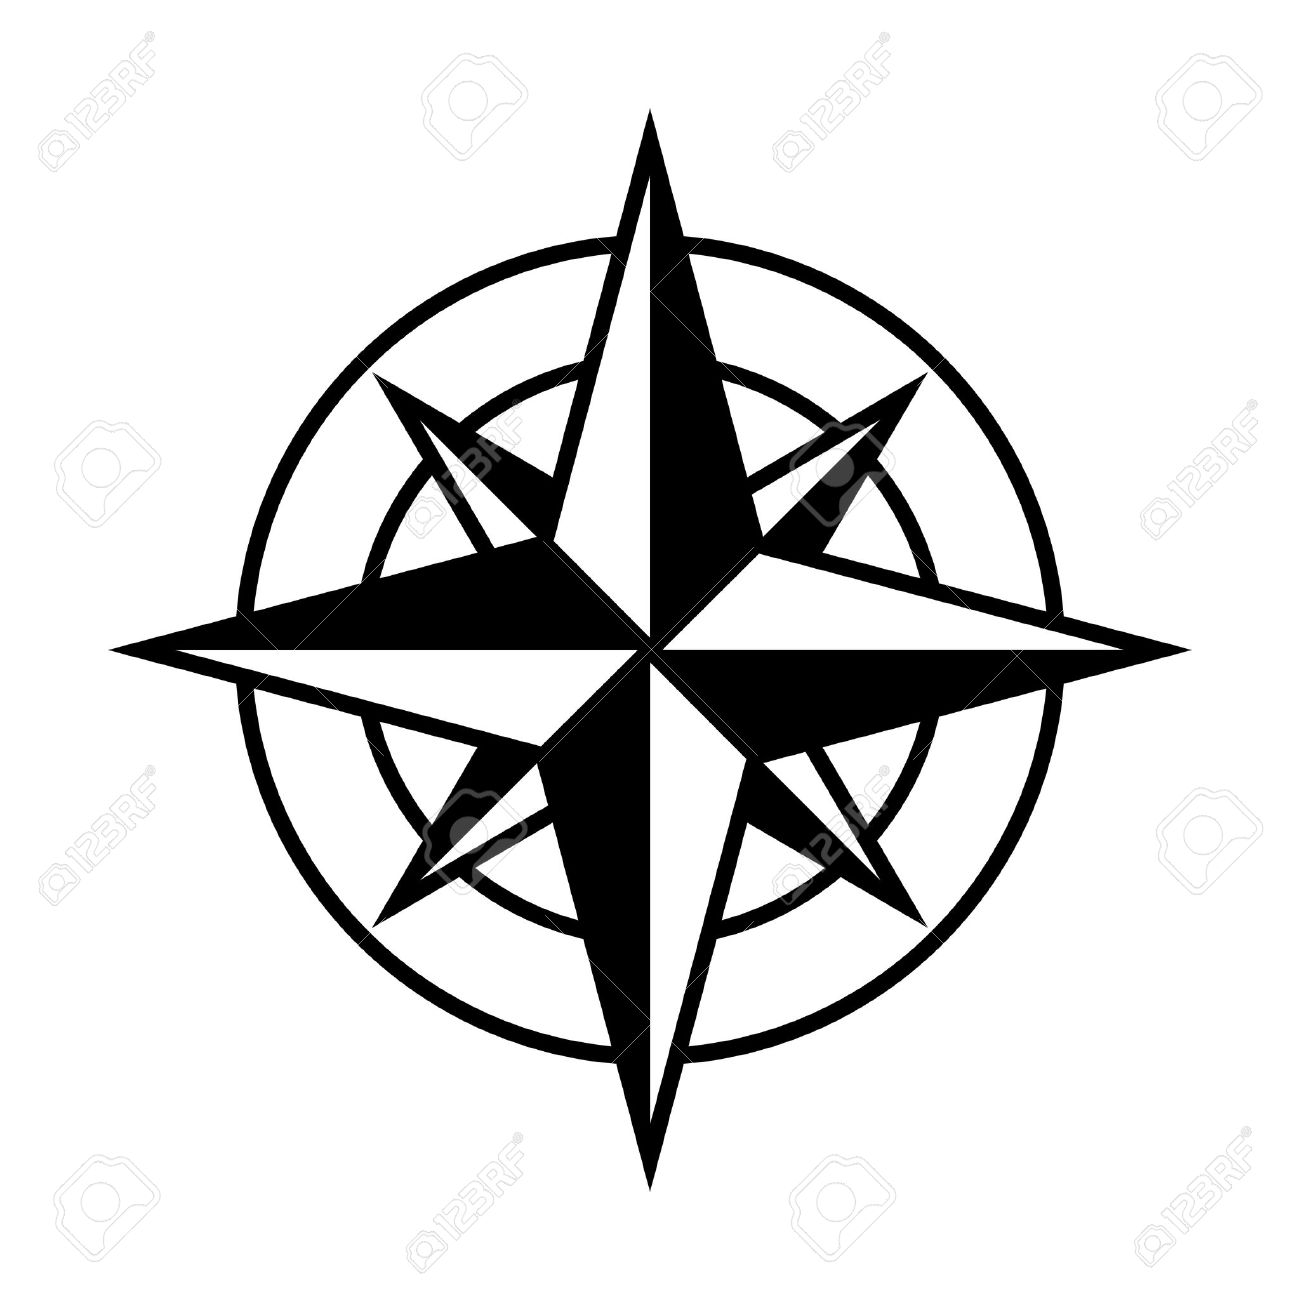 Compass Rose Drawing At Getdrawings